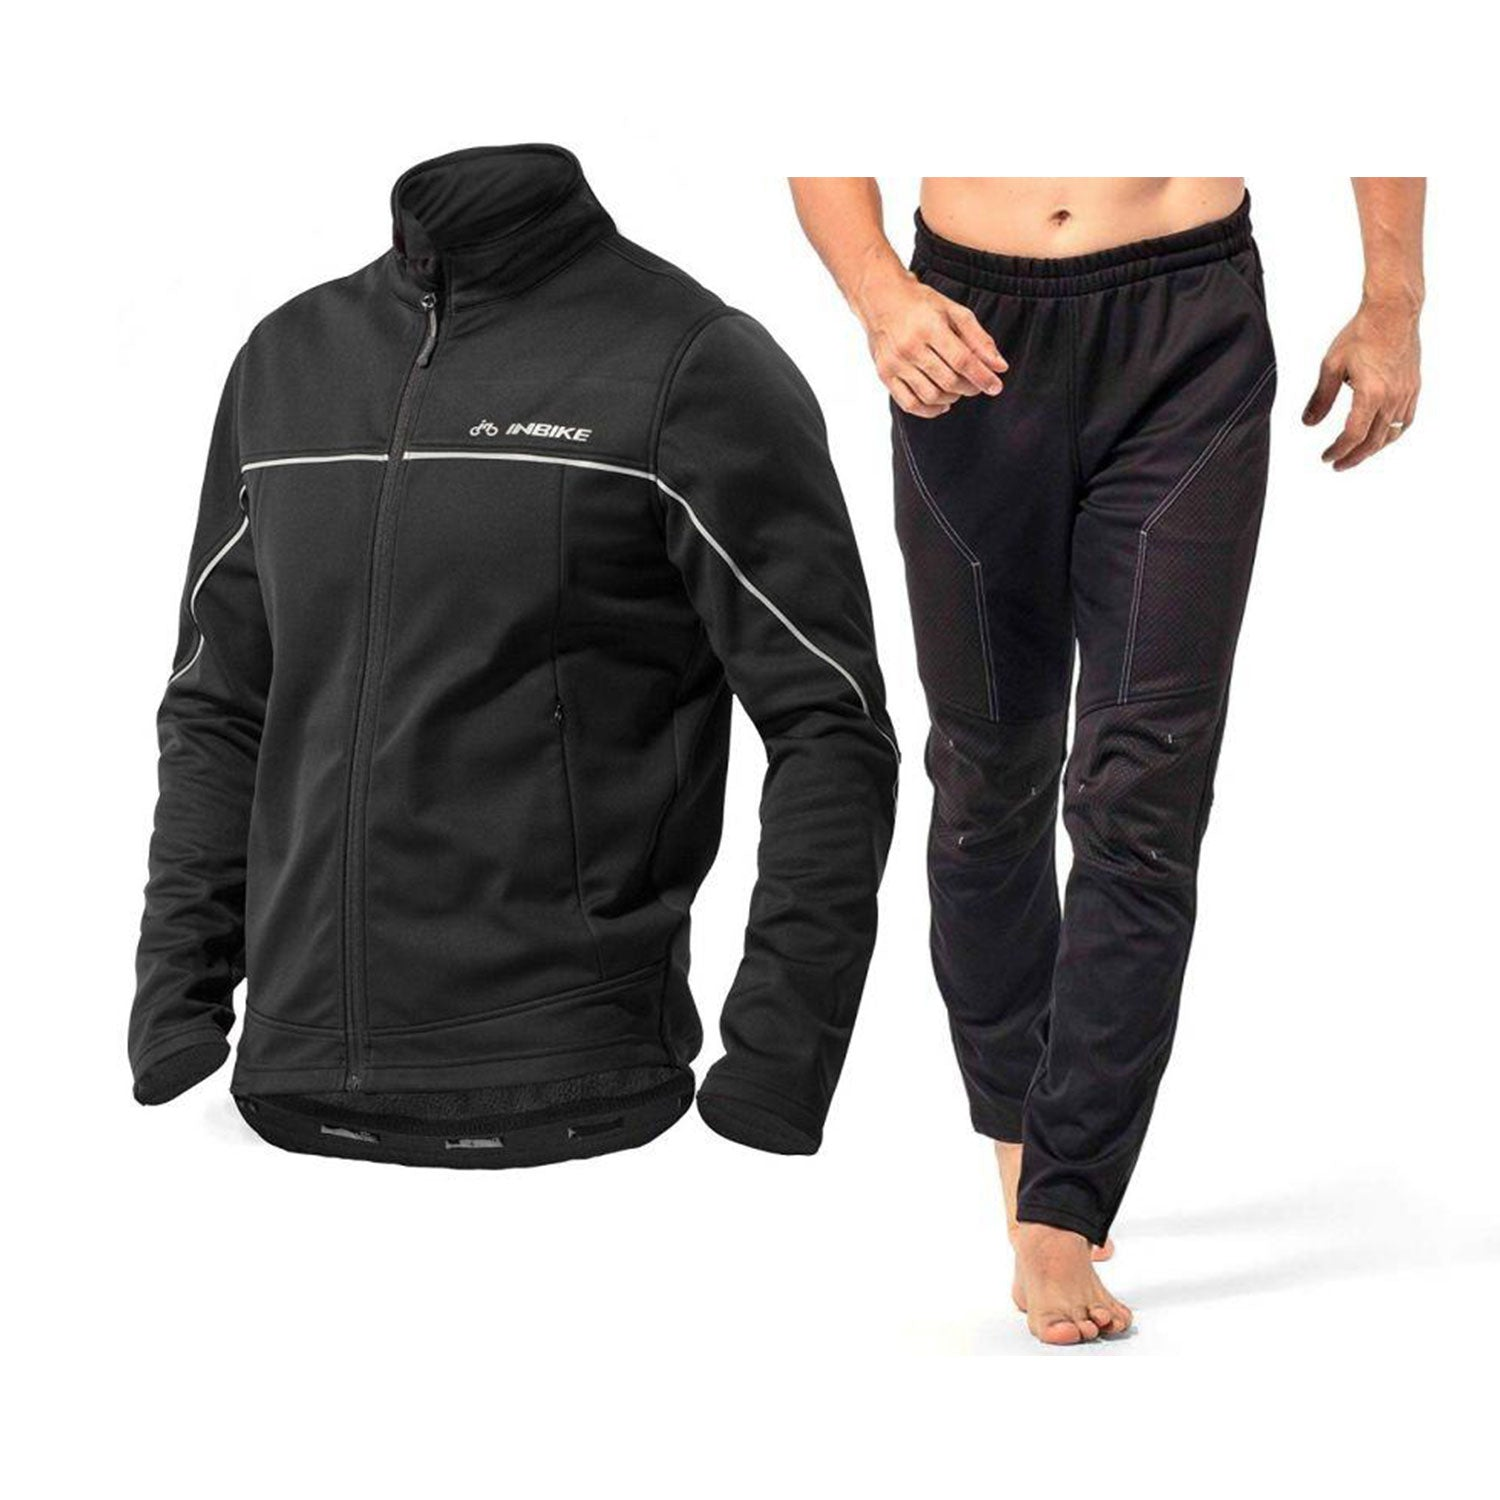 INBIKE Men's Winter Sports Pants